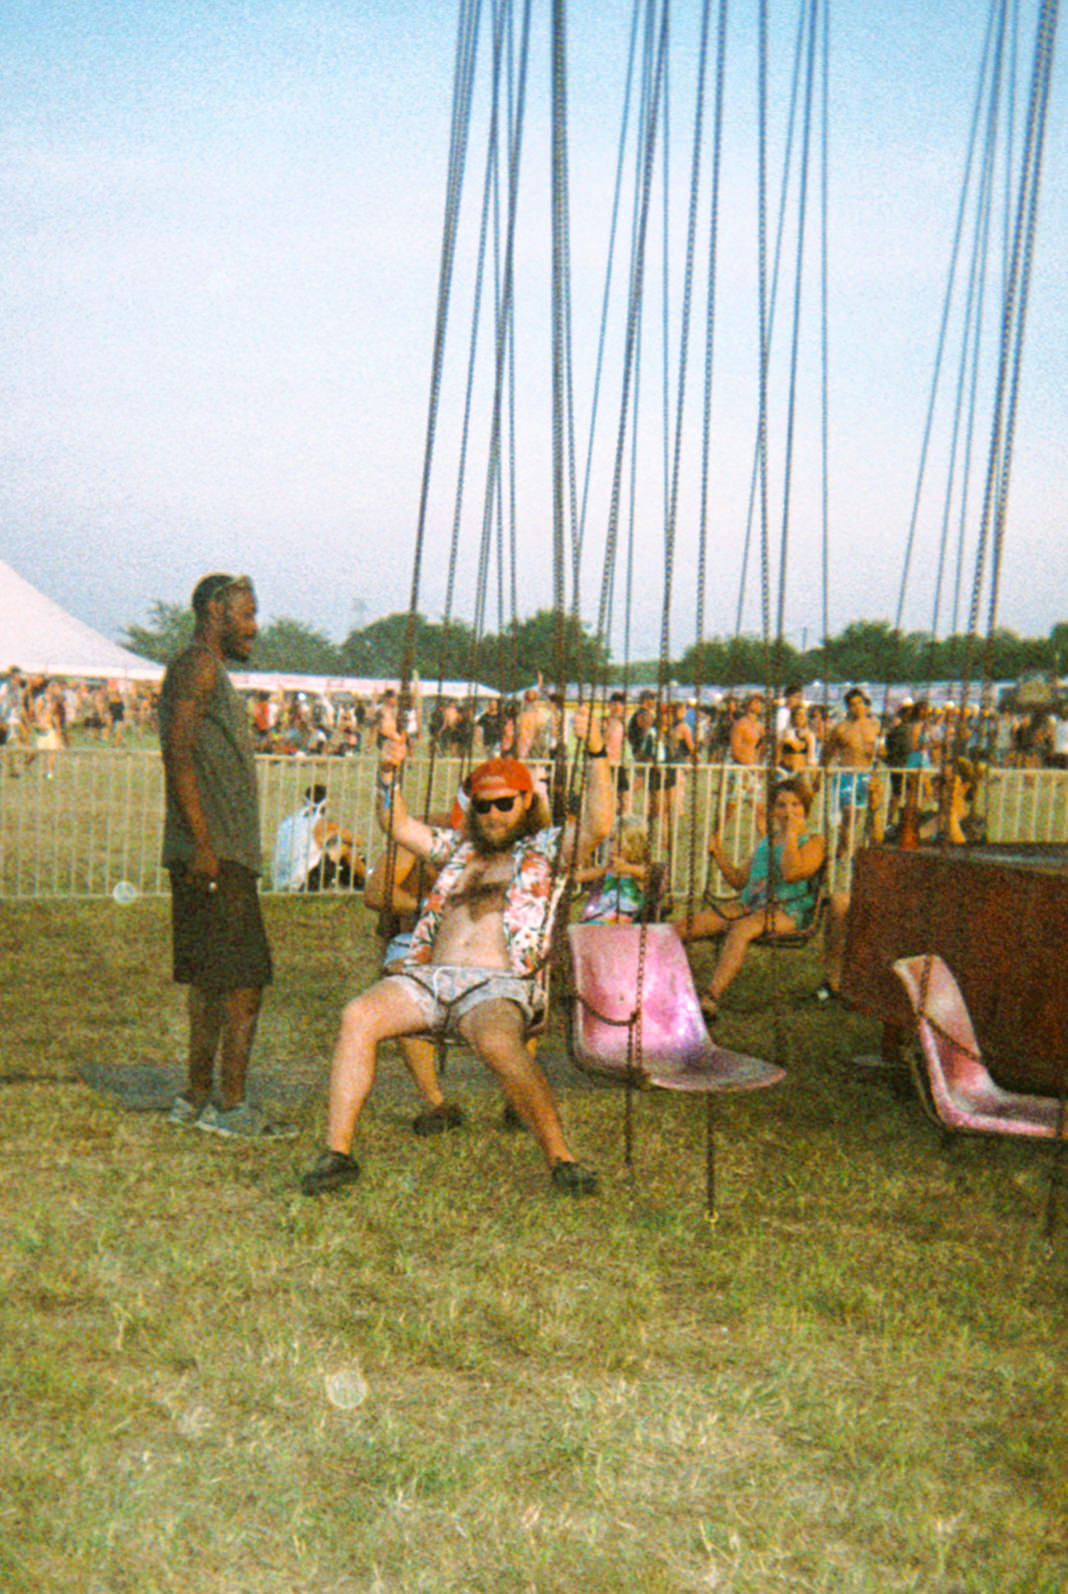 180728-kirby-gladstein-photograpy-Float-Fest-Fuji-disposable-045.jpg